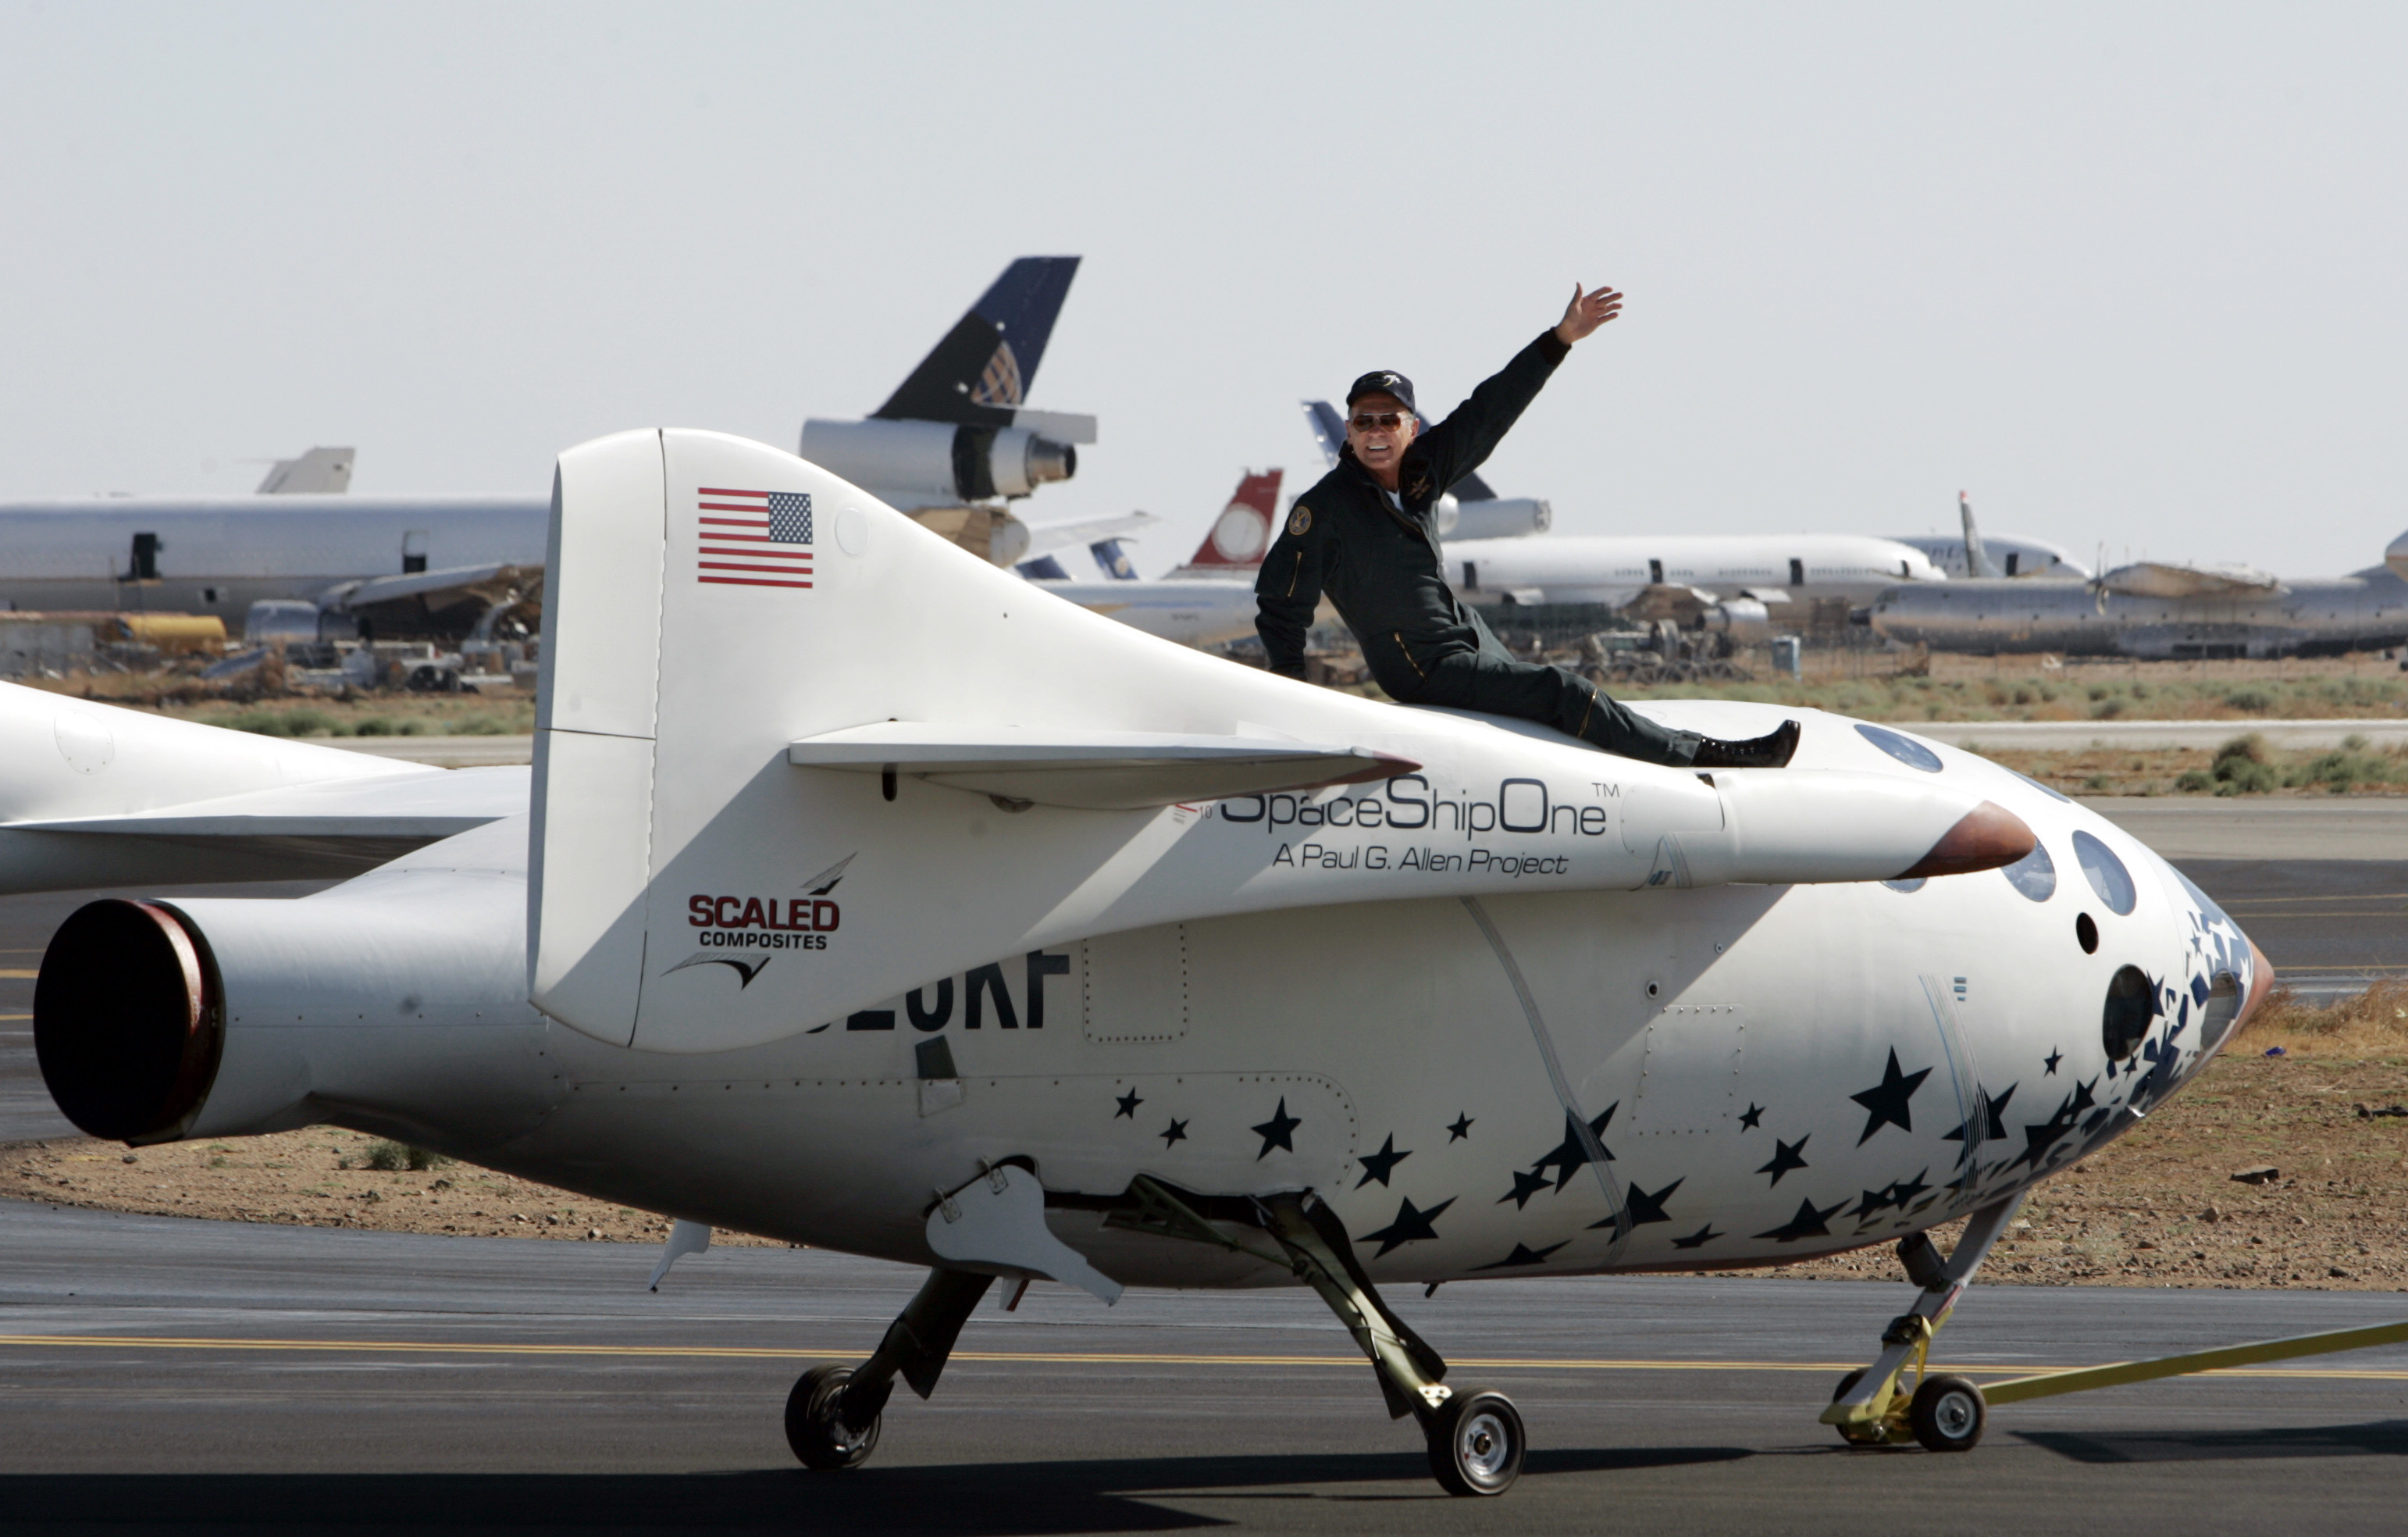 Pilot Mike Melville waves as he sits atop SpaceShipOne as it is towed following his historic flight of the world's first privately funded rocket plane beyond Earth's atmosphere at the Mojave Airport in California, June 21, 2004. SpaceShipOne, designed by legendary aerospace designer Burt Rutan and funded by billionaire Paul Allen, reached a height of 62 miles making Melville the world's first private astronaut. REUTERS/Mike Blake  MB - RTR4UJ0